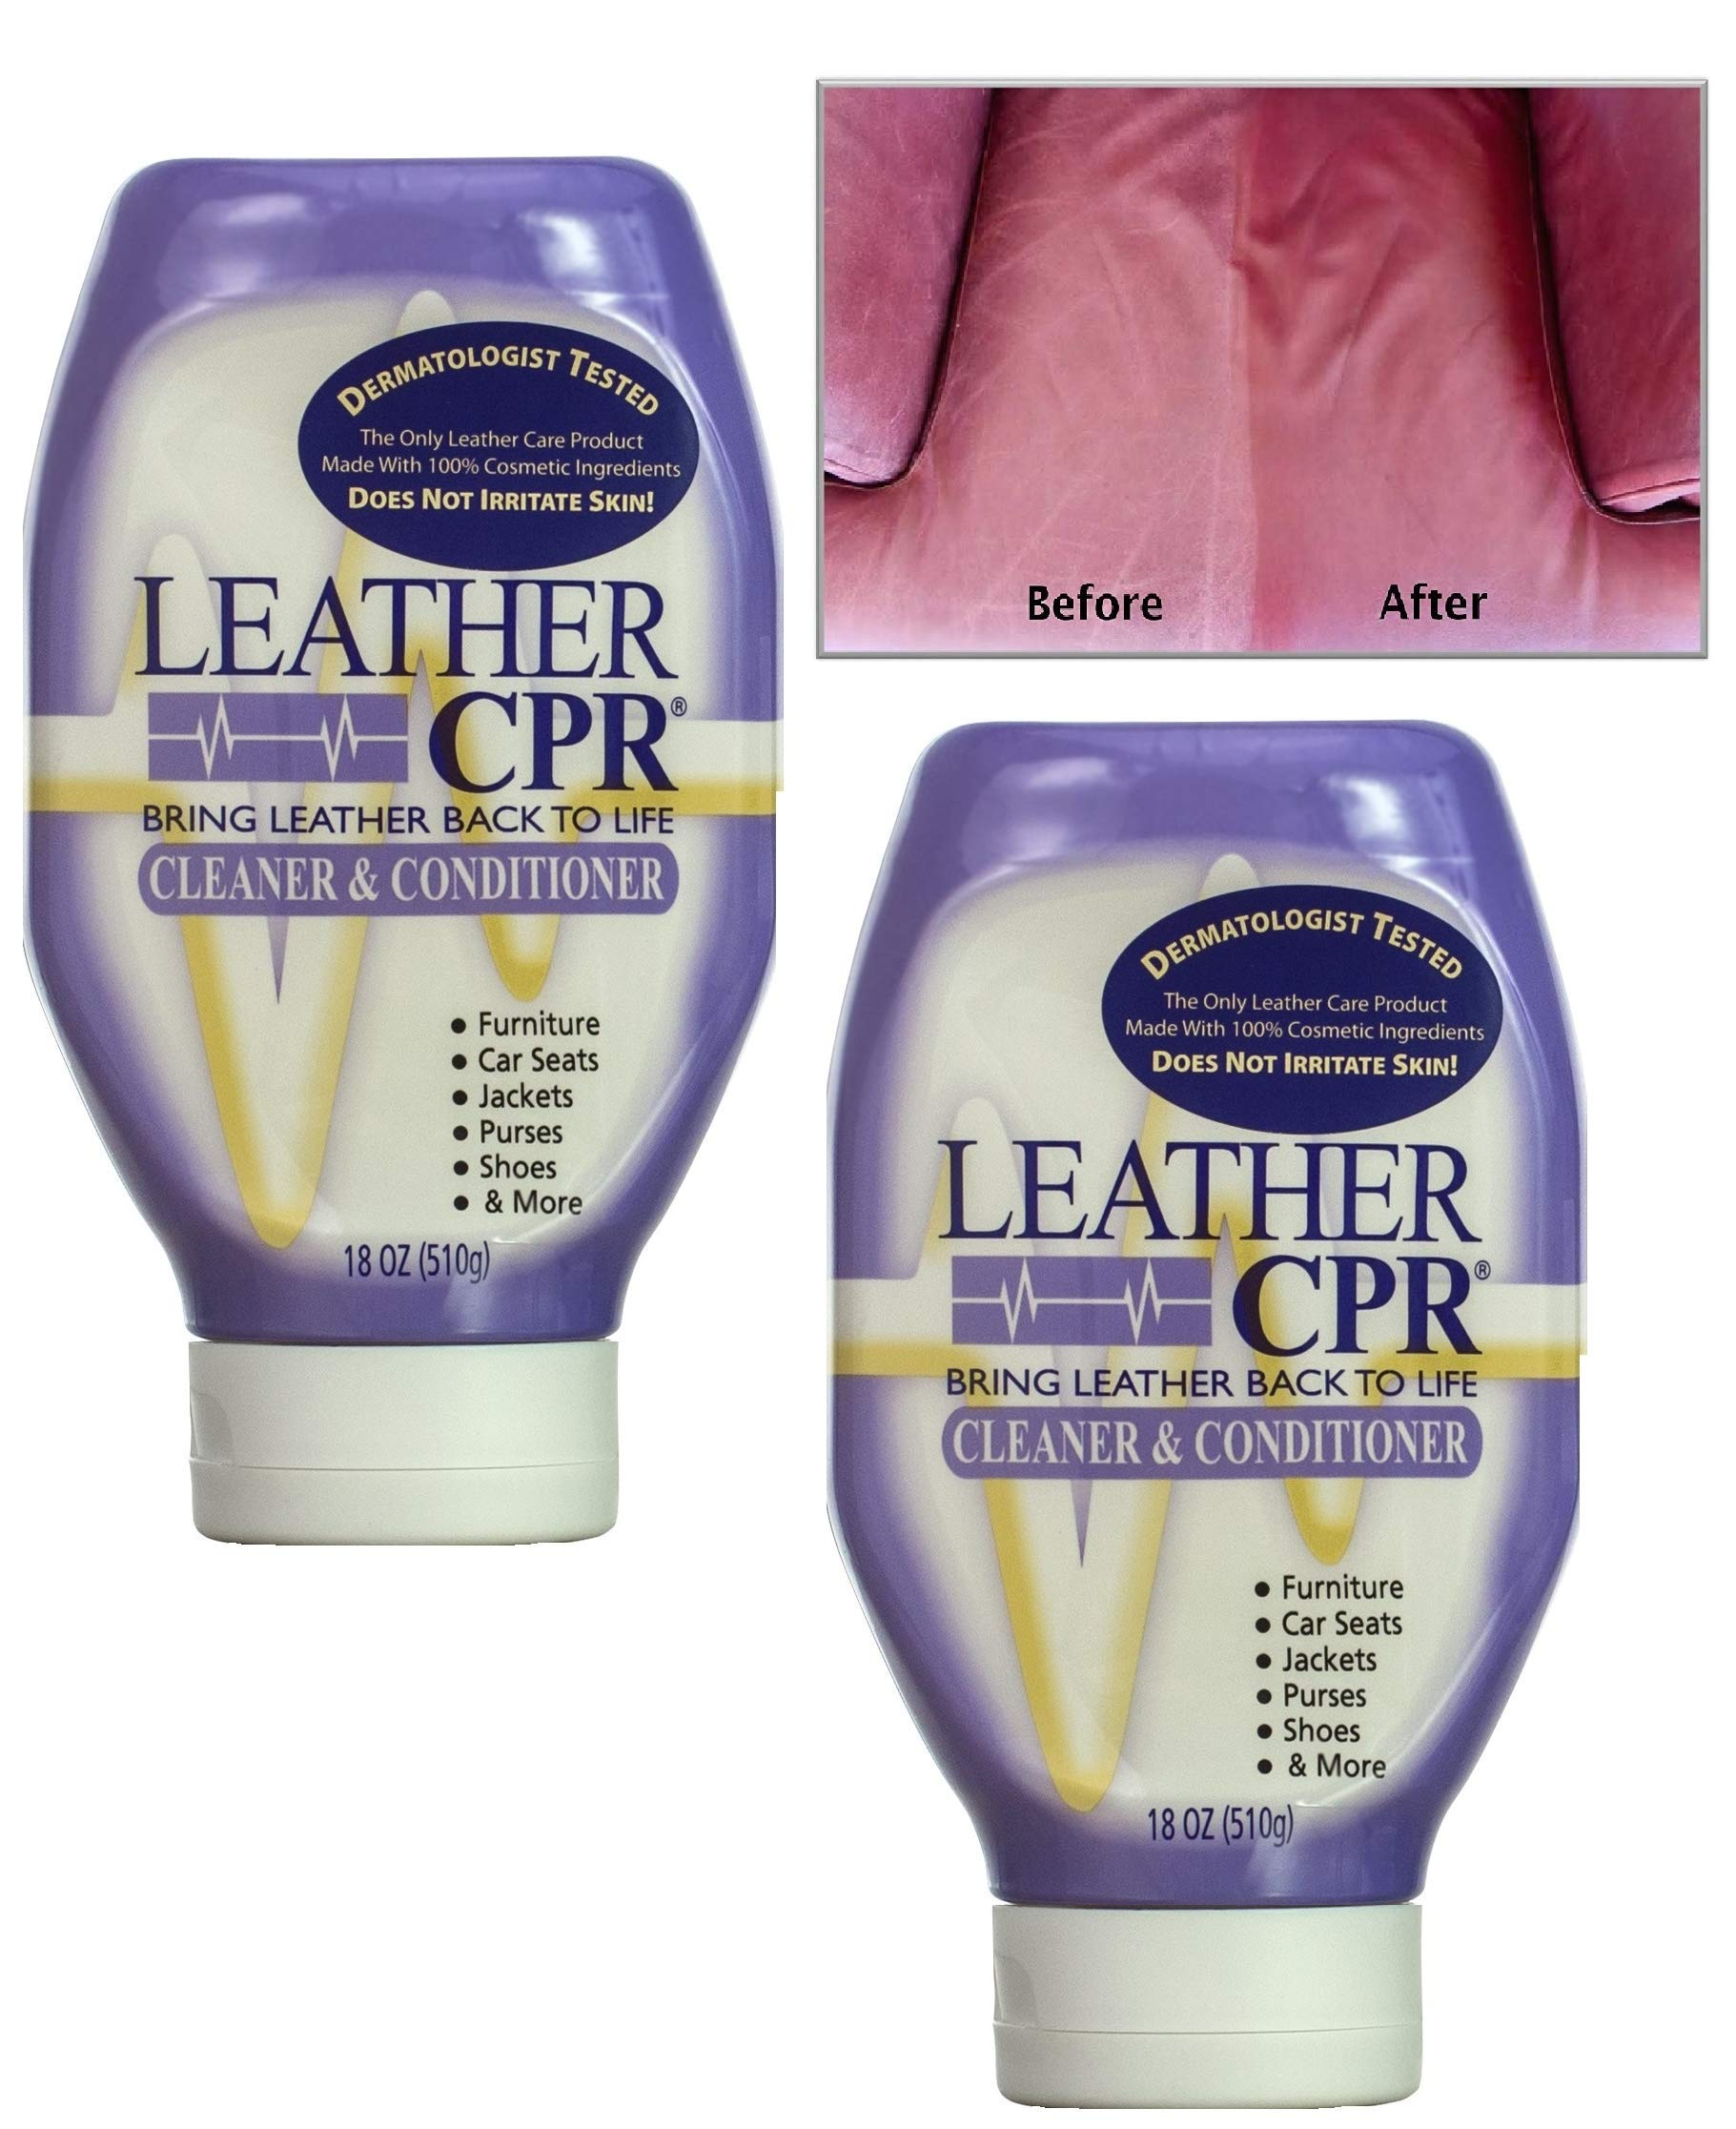 Leather CPR Cleaner & Conditioner By CPR Cleaning Products (Value 2-Pack of 18oz Bottles) Restores & Protects Leather Furniture, Purses, Car Seats, Jackets & More by CPR CLEANING PRODUCTS